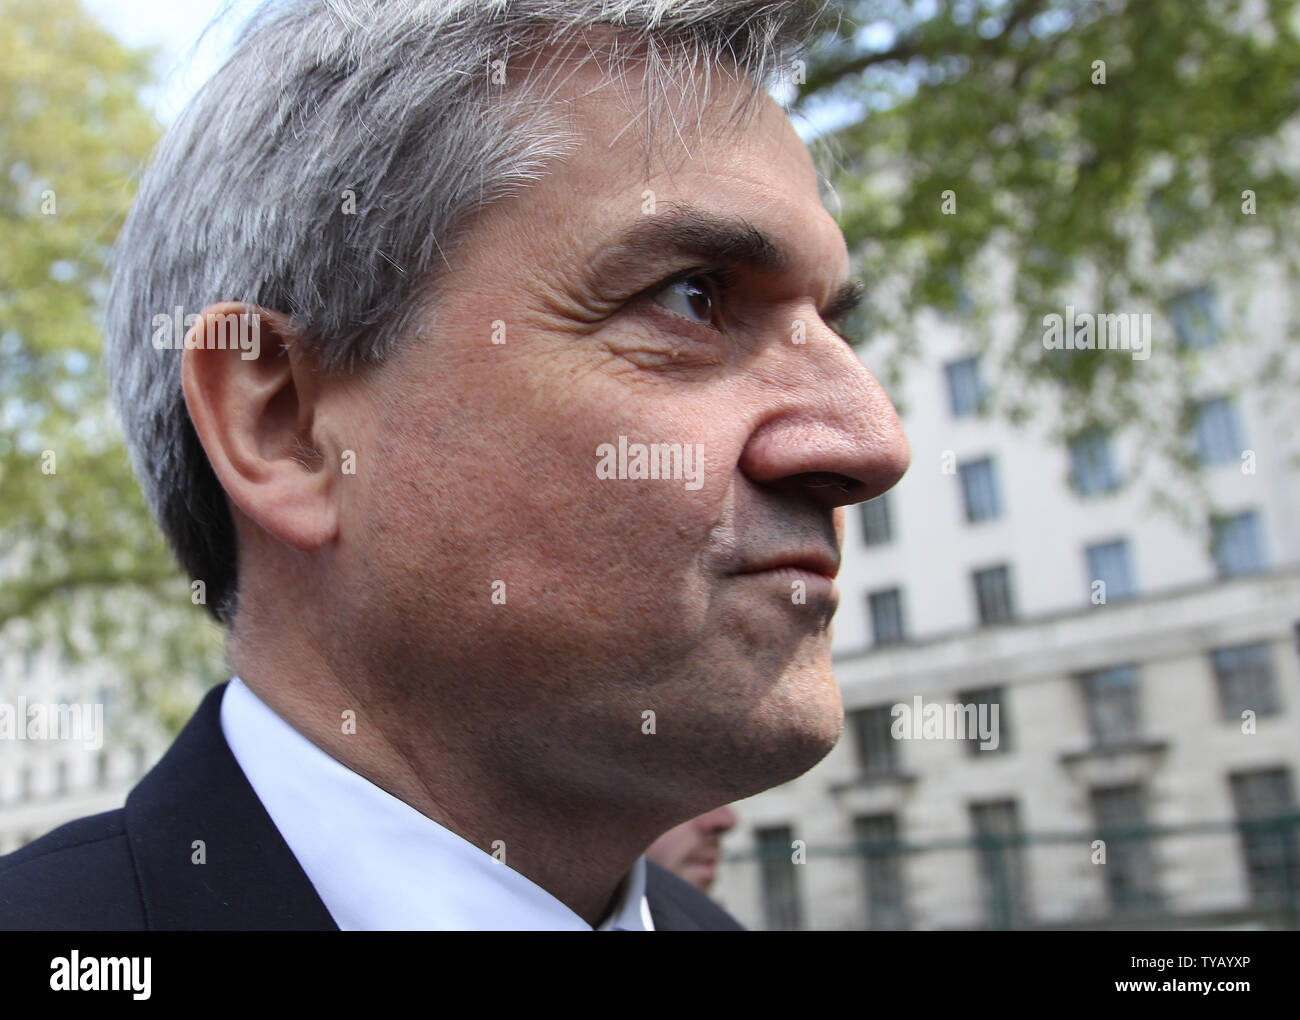 Liberal Democrat home secretary Chris Huhne leaves the Cabinet offices after trying to strike a deal with the Conservative party and form a coalition government in London on May 10 2010 London,England. Conservative leader David Cameron is meeting his party members tonight for a showdown.   UPI/Hugo Philpott - Stock Image